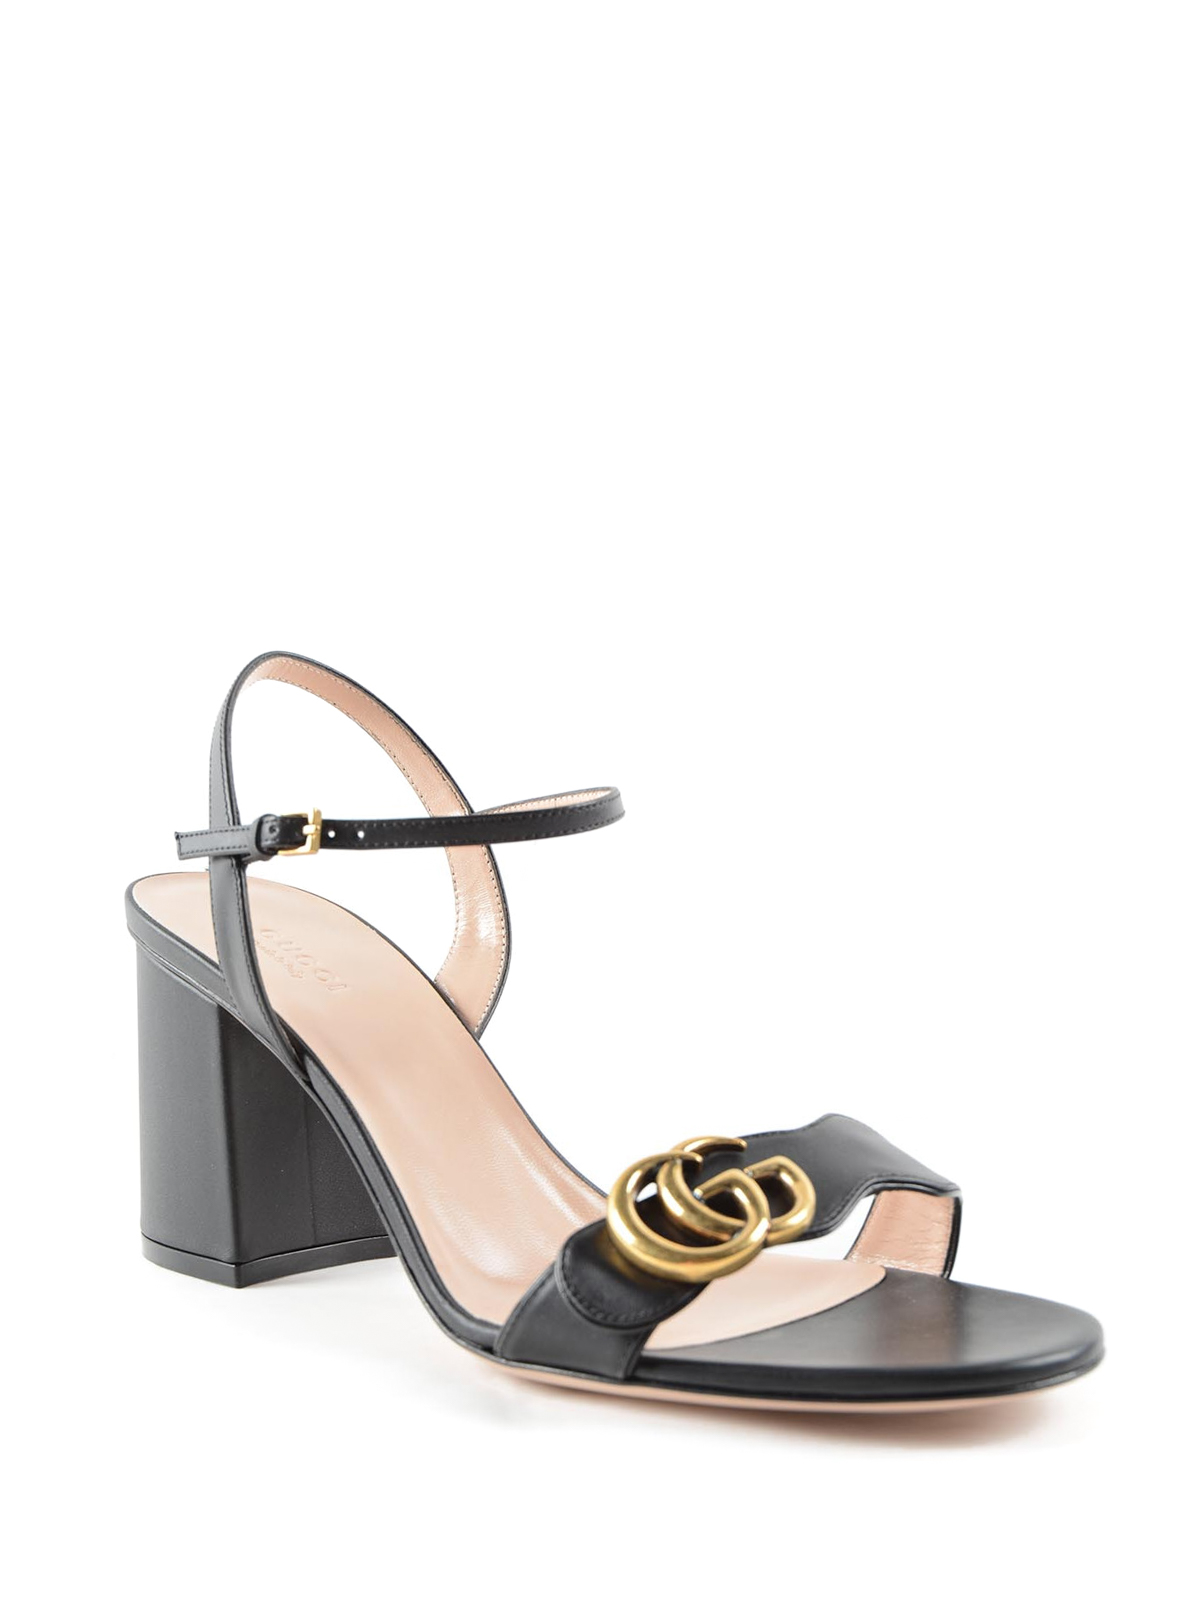 29e98ee3c730 Gucci - Mid-heel GG leather sandals - sandals - 453379 A3N00 1000